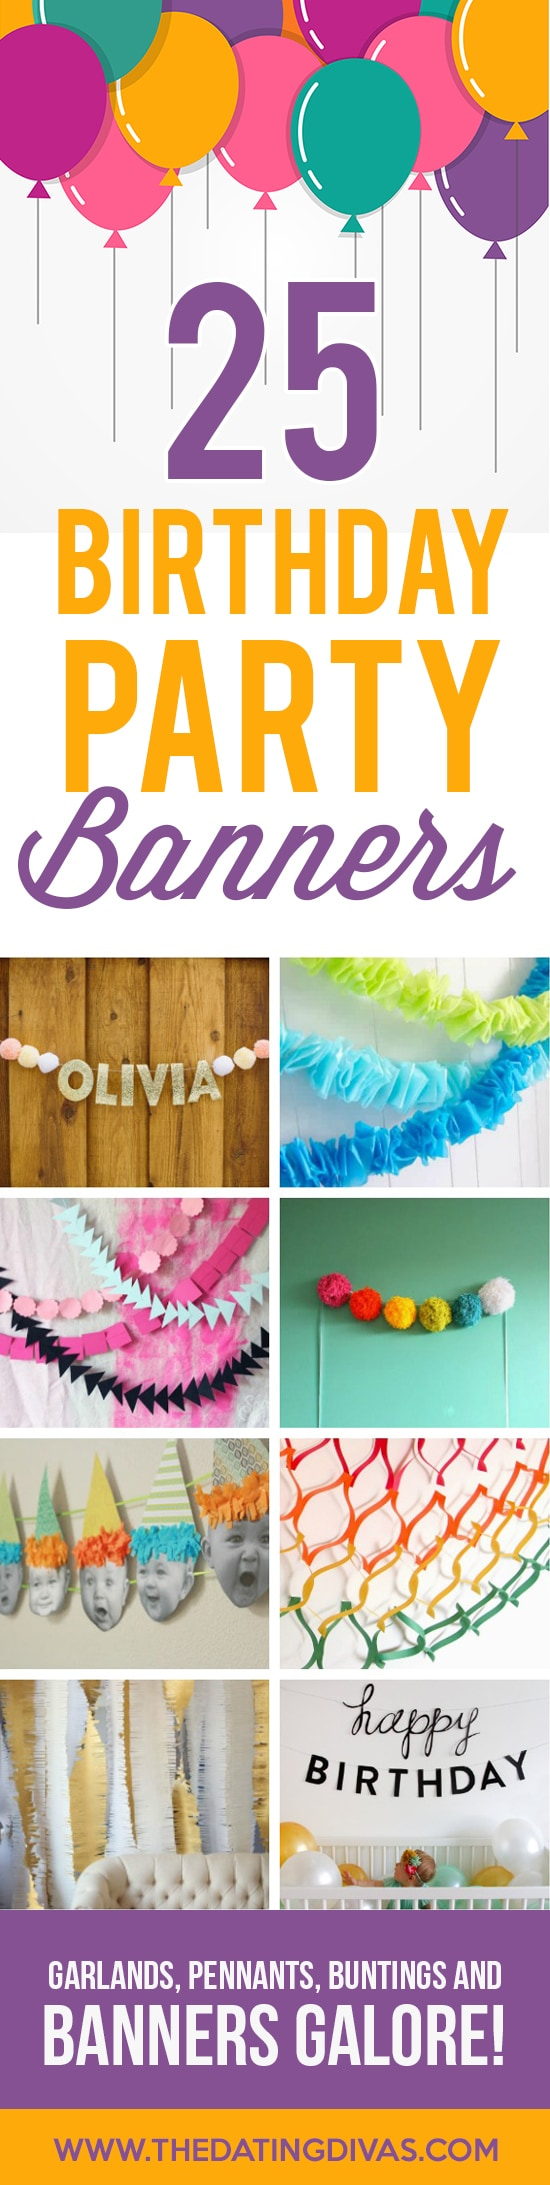 Cute Birthday Party Banners, Garlands and Pennants